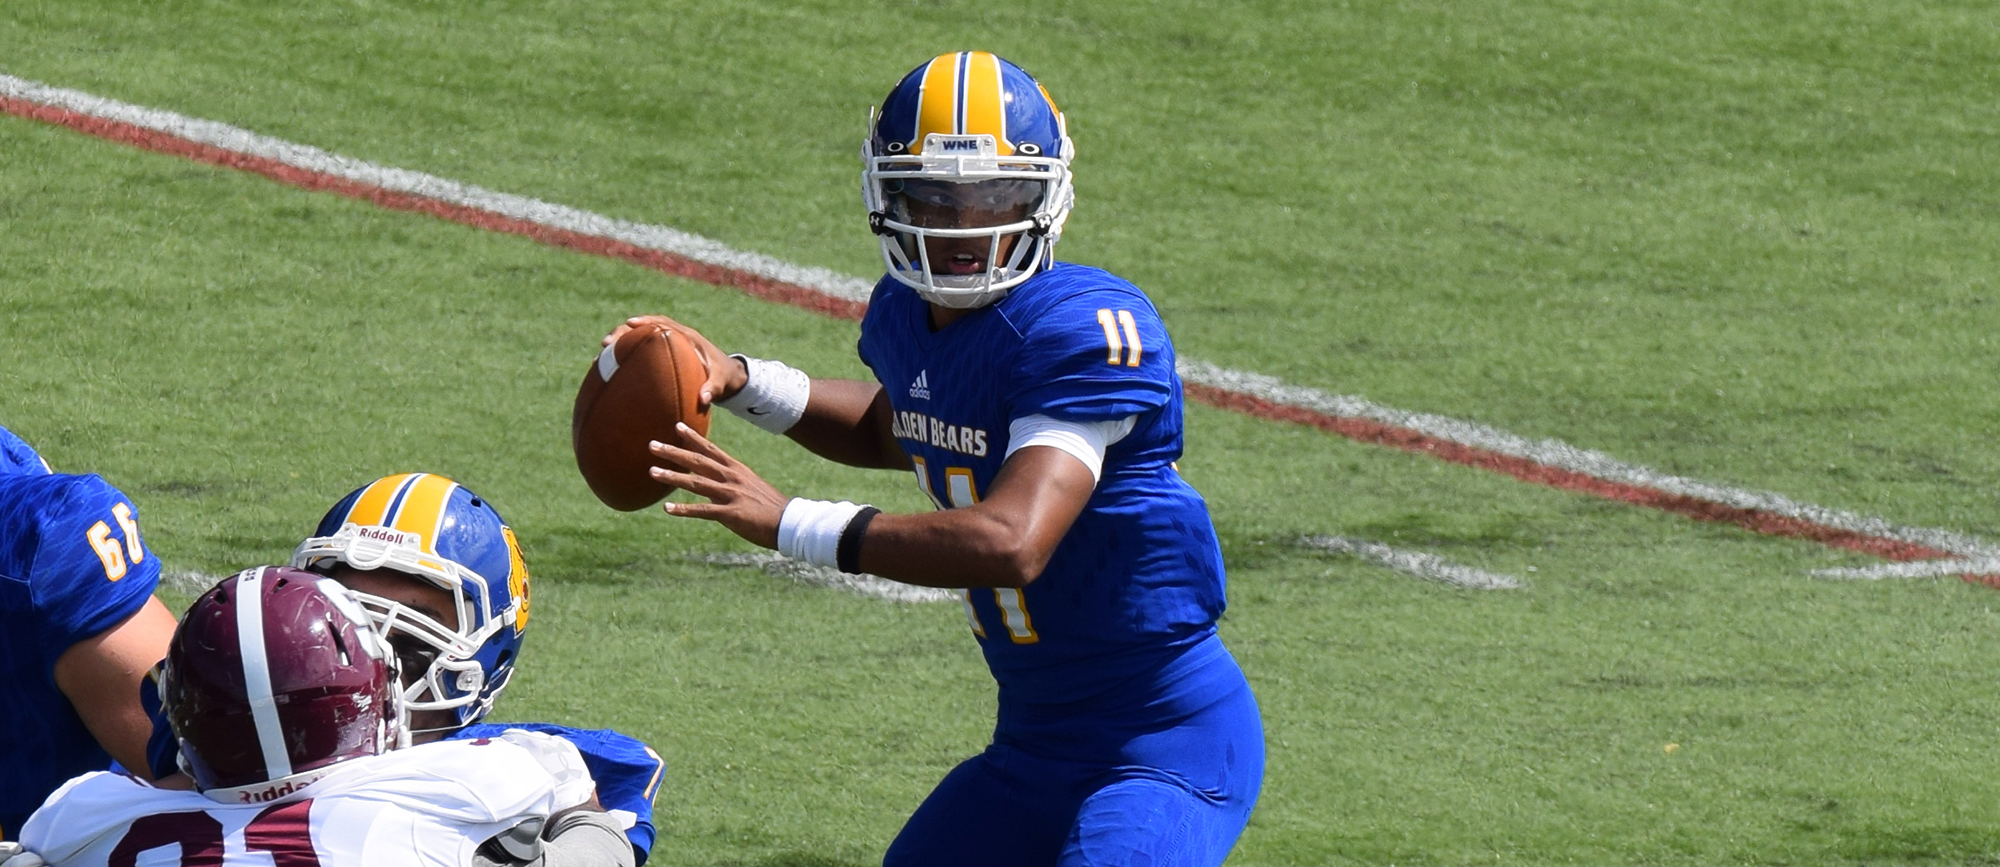 Senior quarterback Anthony Service completed 19-of-24 pass attempts for 288 yards and four touchdowns in Western New England's 38-6 win at Westfield State on Friday night.